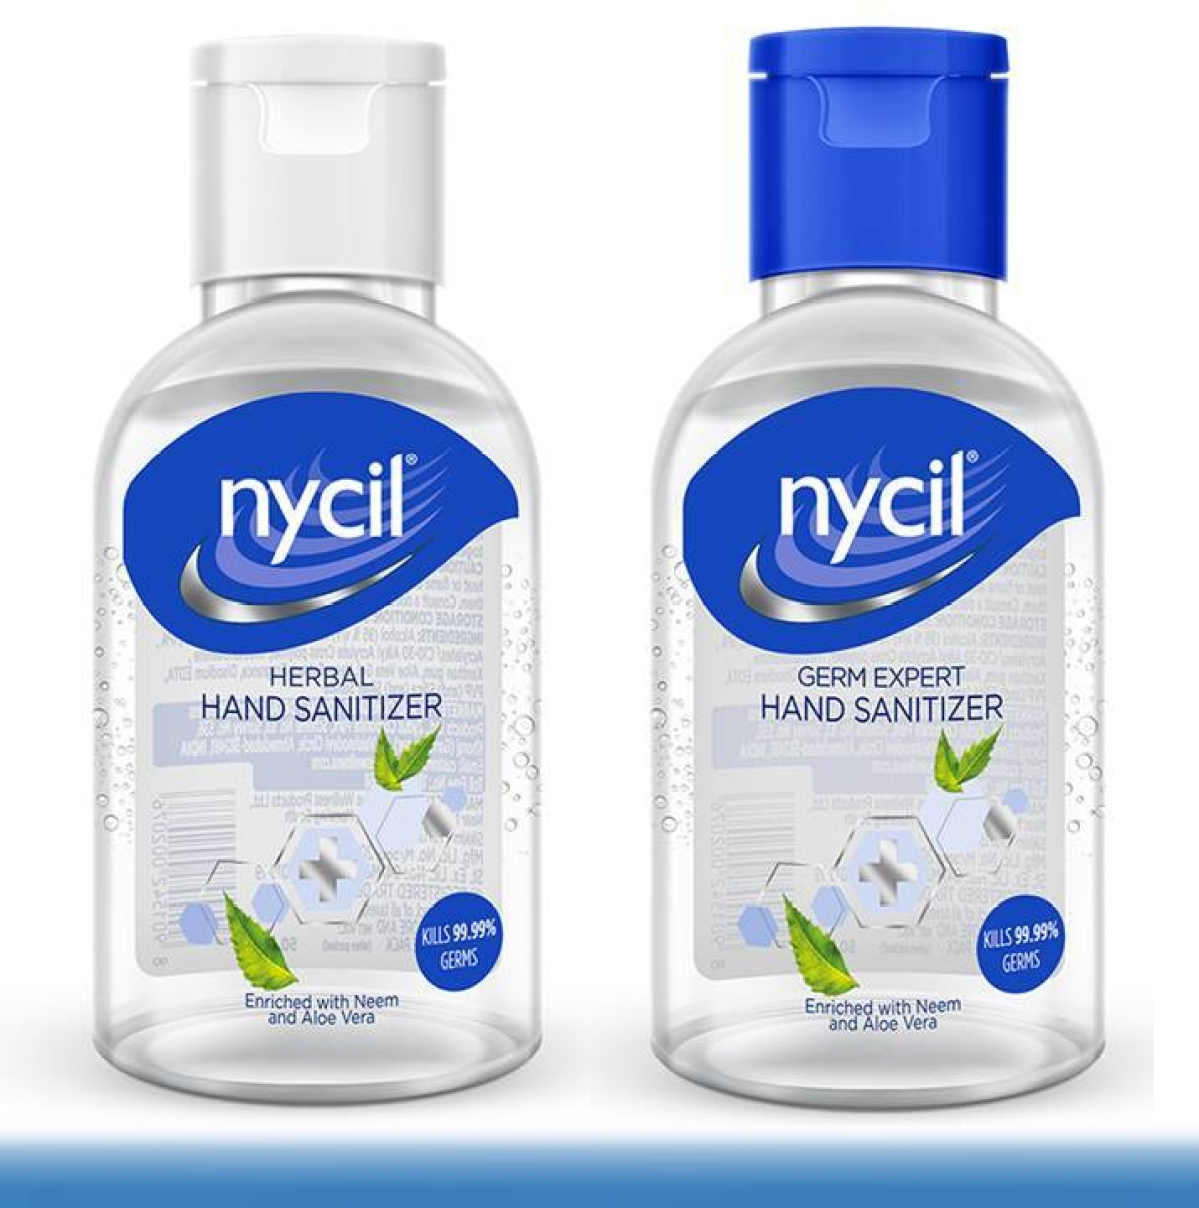 India's hand sanitiser category sees more entrants as demand surges…